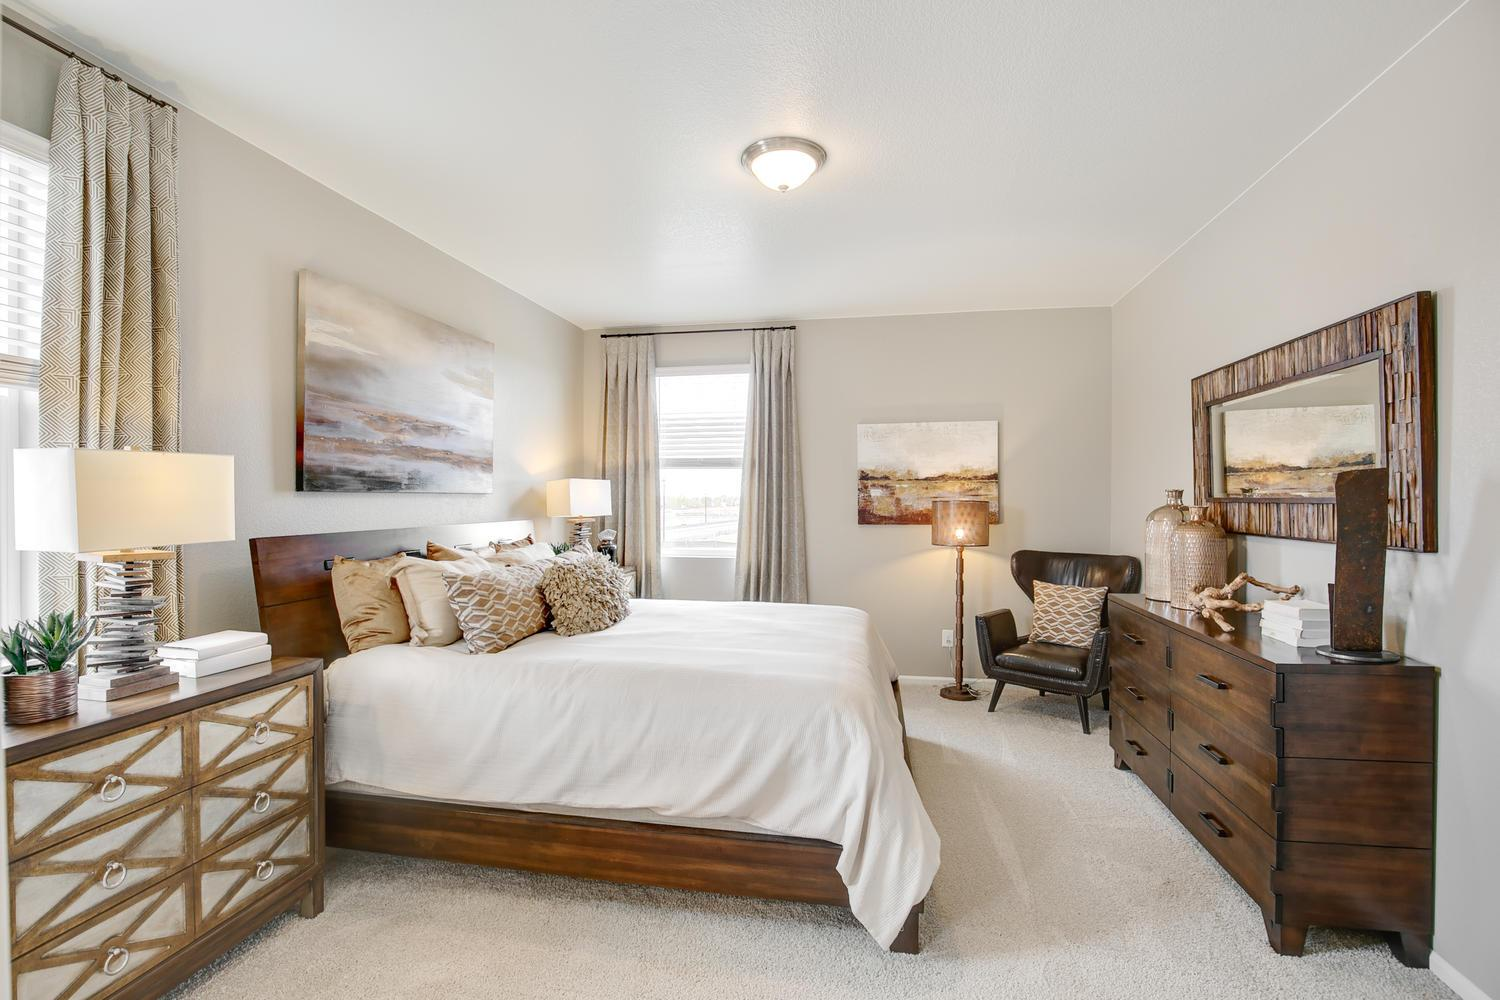 Bedroom featured in the NEUVILLE By D.R. Horton in Fort Collins-Loveland, CO